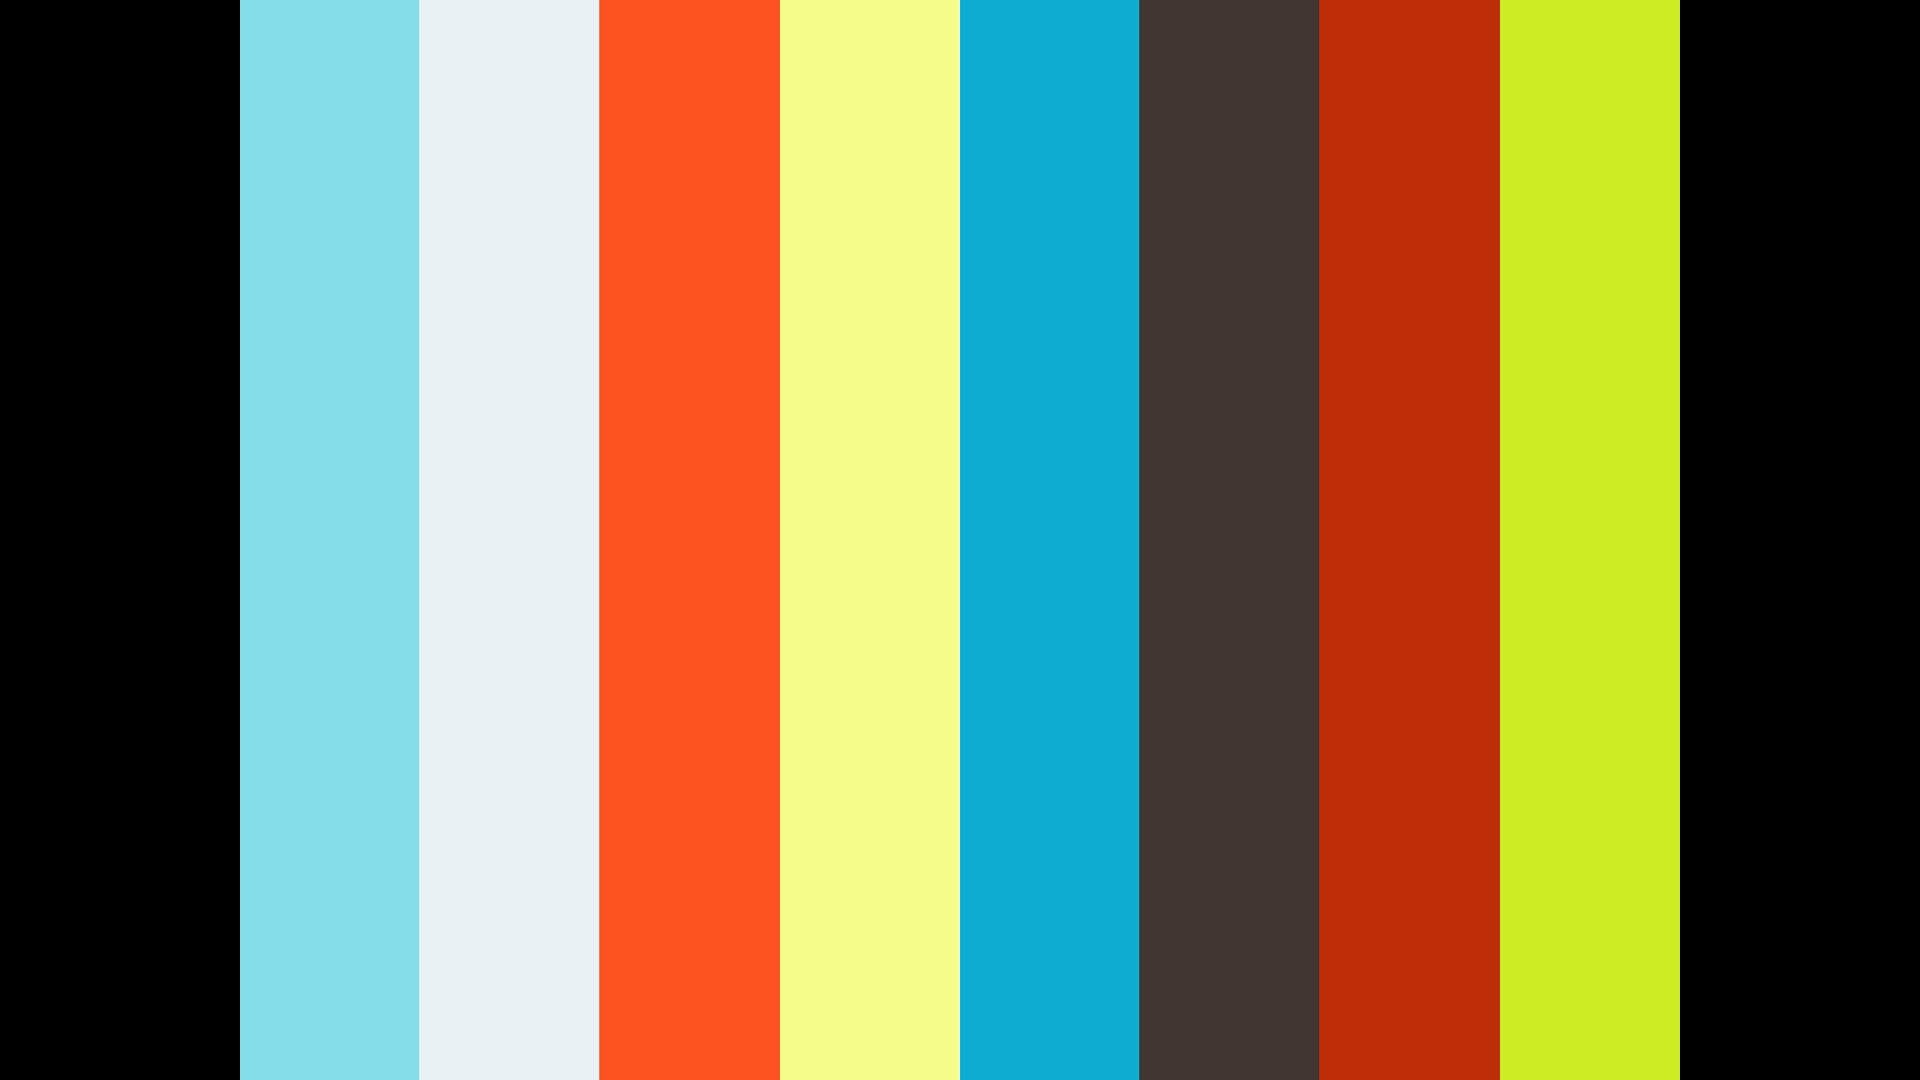 How Did You Build Your Portfolio?